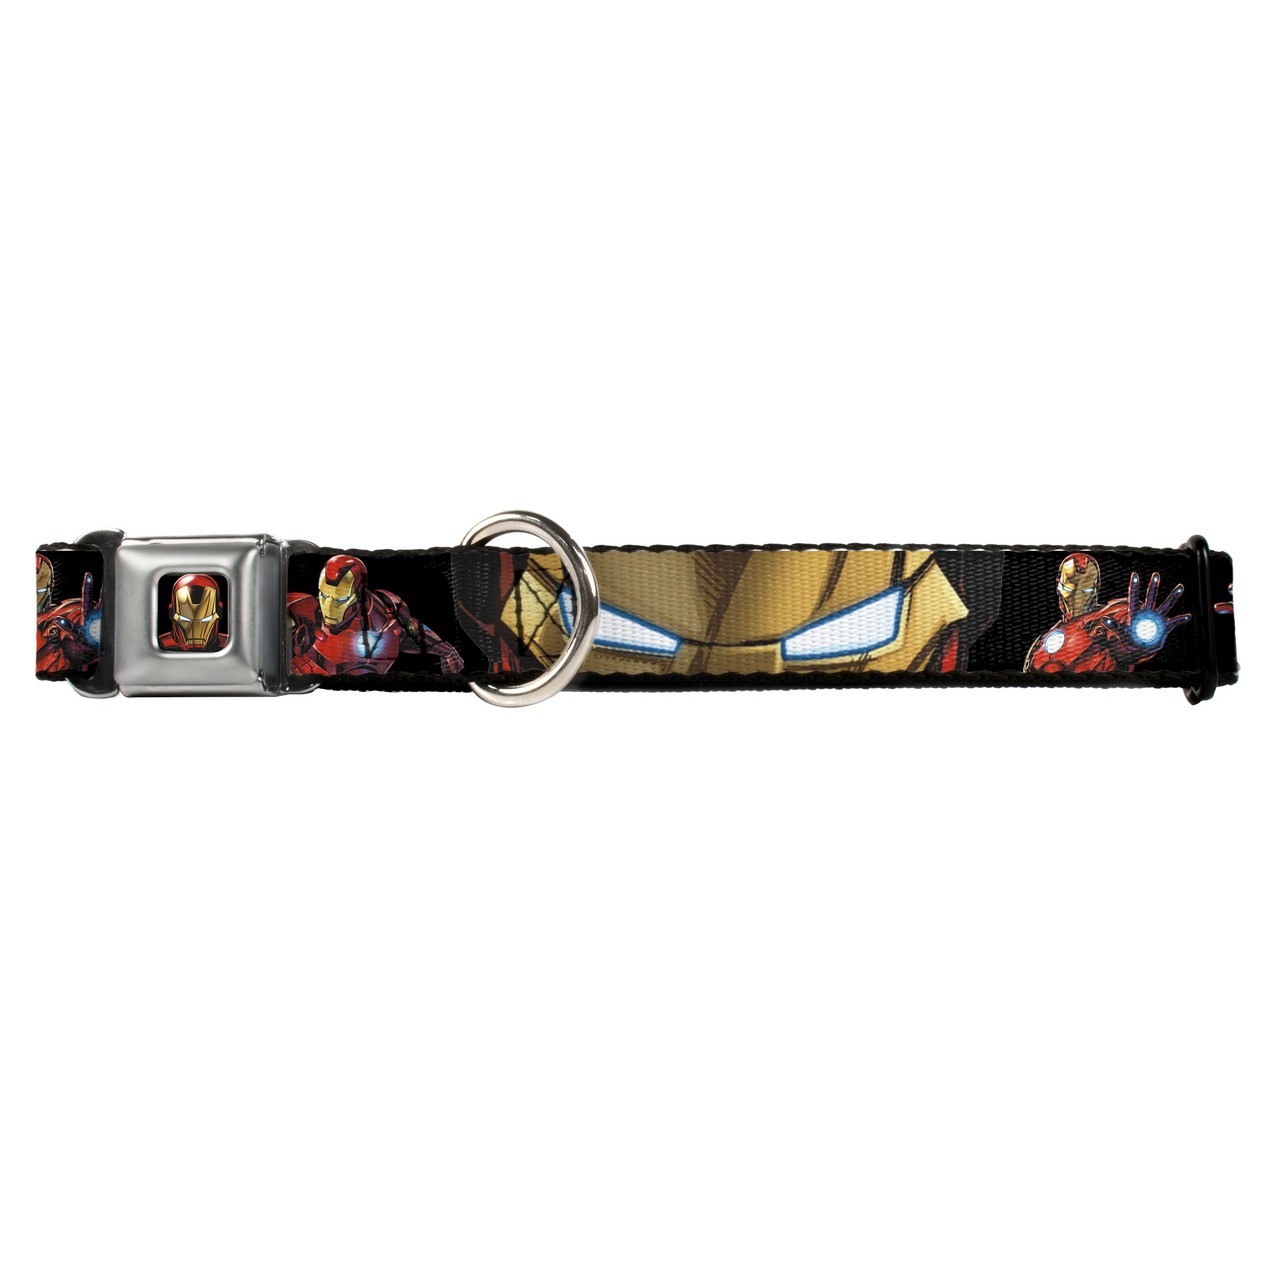 Hot Dog Marvel Avengers Assemble Iron Man Buckle-Down Sea...